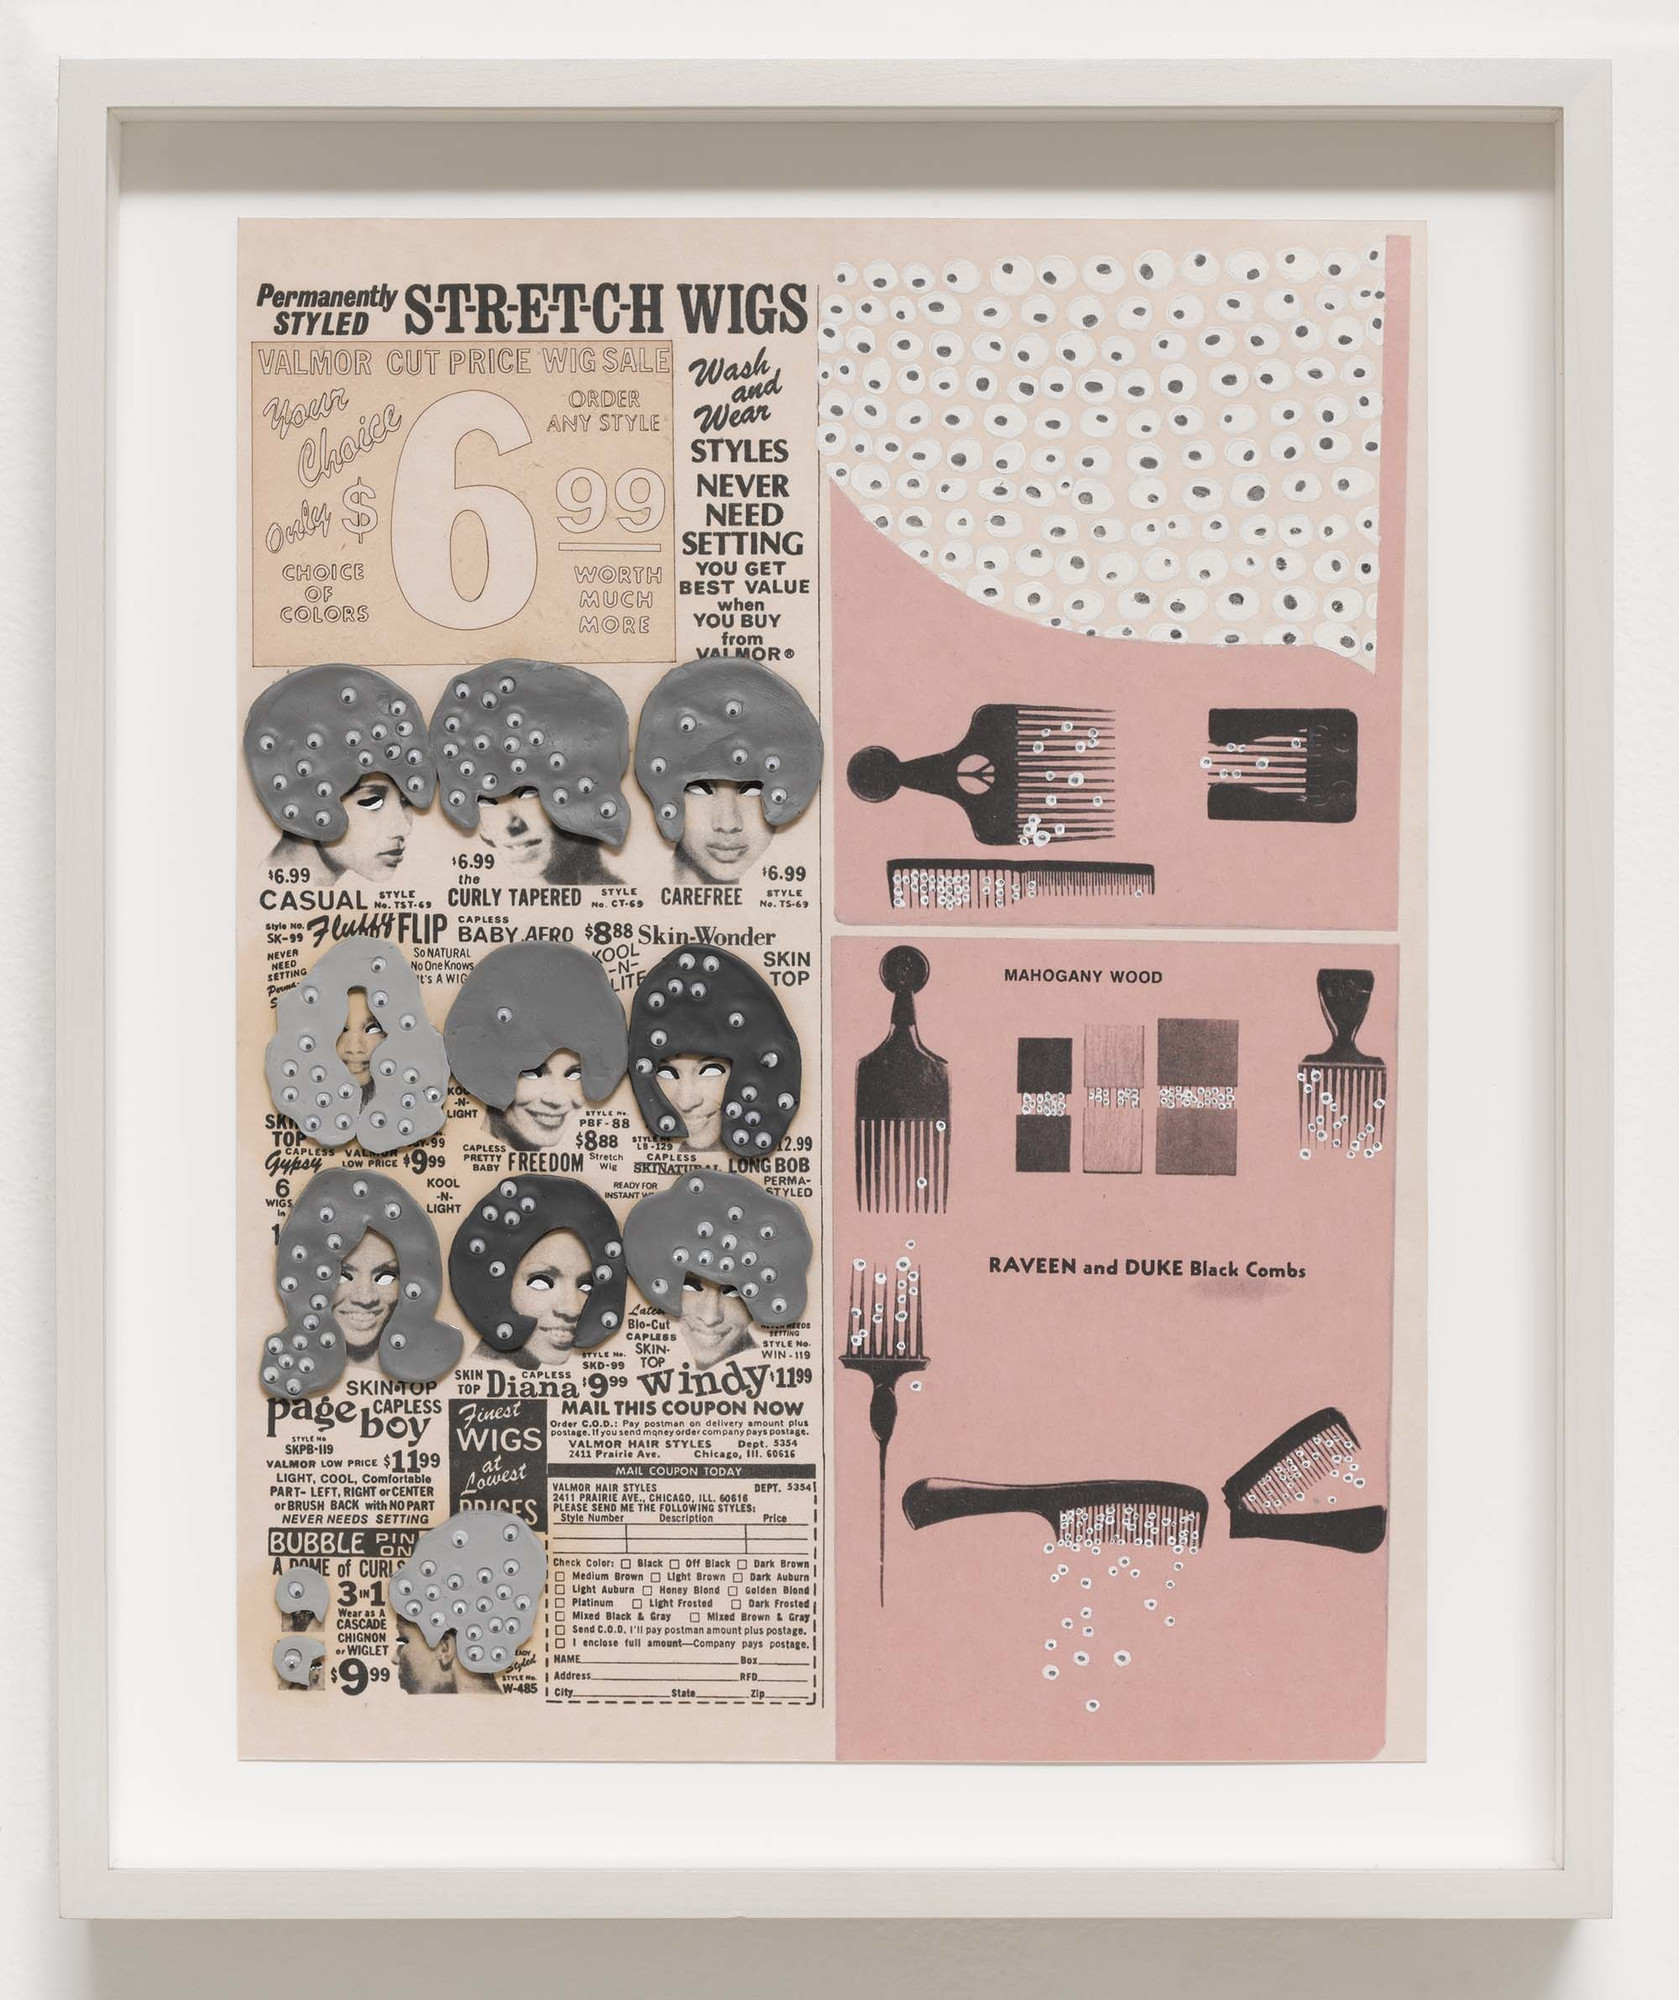 "Ellen Gallagher. Black Combs from DeLuxe (detail). 2004–05. Photogravure, chine collé, oil, laser cutting, plasticine, and toy eyeballs, from a portfolio of 60 mixed media works, composition and sheet: 13 x 10"" (33 x 25.4 cm). Publisher and printer: Two Palms Press, New York. Edition: 20. Acquired through the generosity of The Friends of Education of The Museum of Modern Art and The Speyer Family Foundation, Inc., with additional support from the General Print Fund. © 2012 Ellen Gallagher and Two Palms Press"